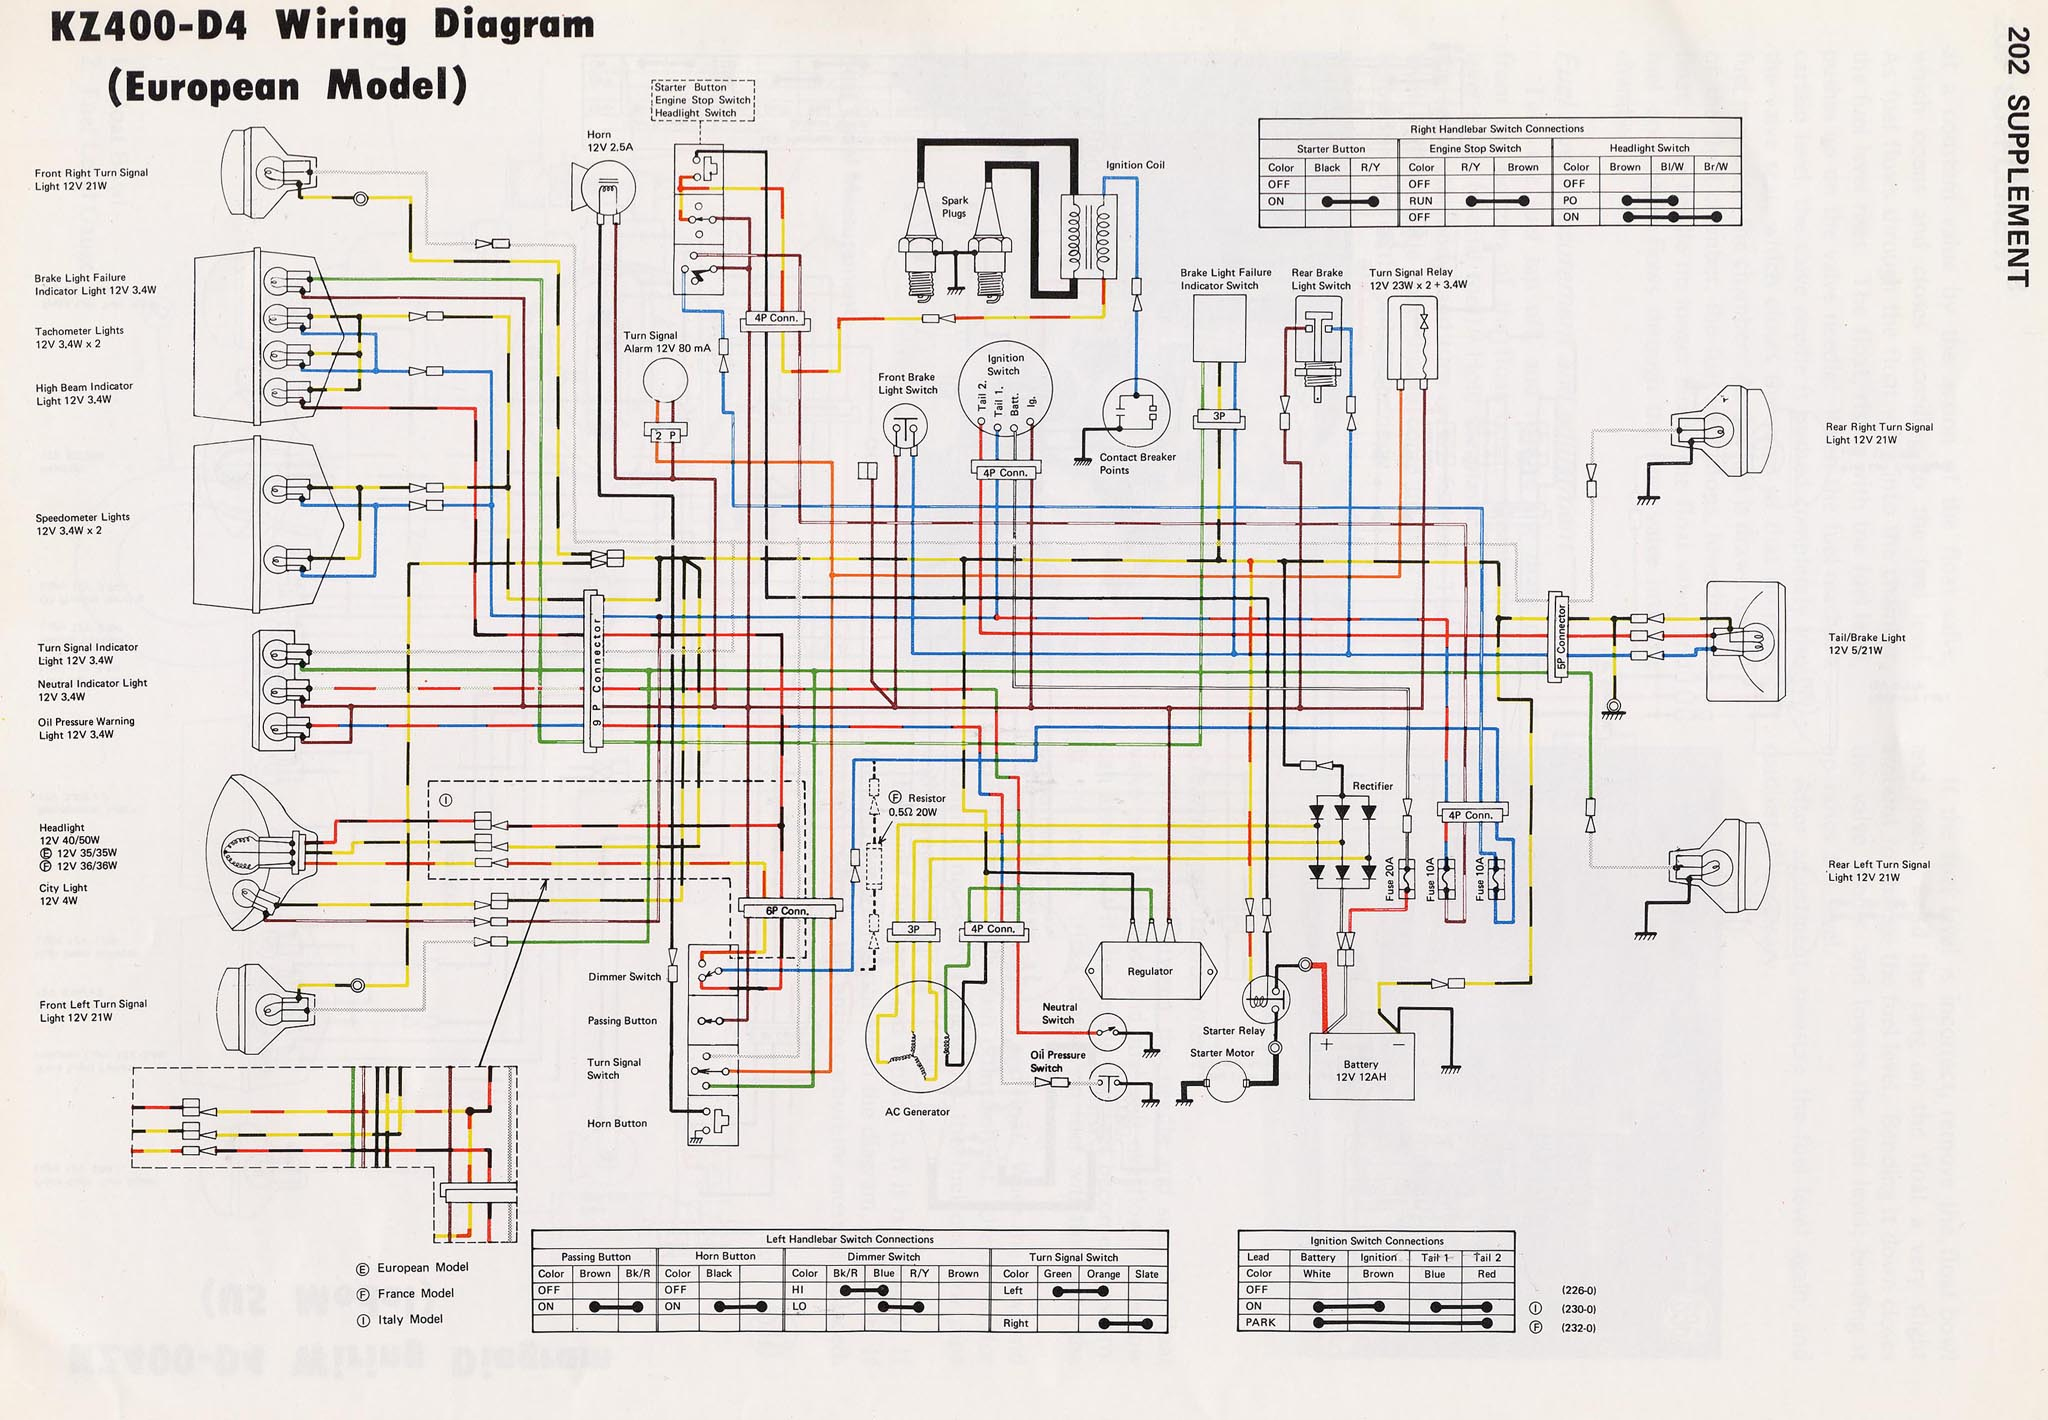 Plymouth Engine Diagrams Auto Electrical Wiring Diagram 1951 Hudson Hornet Model Car